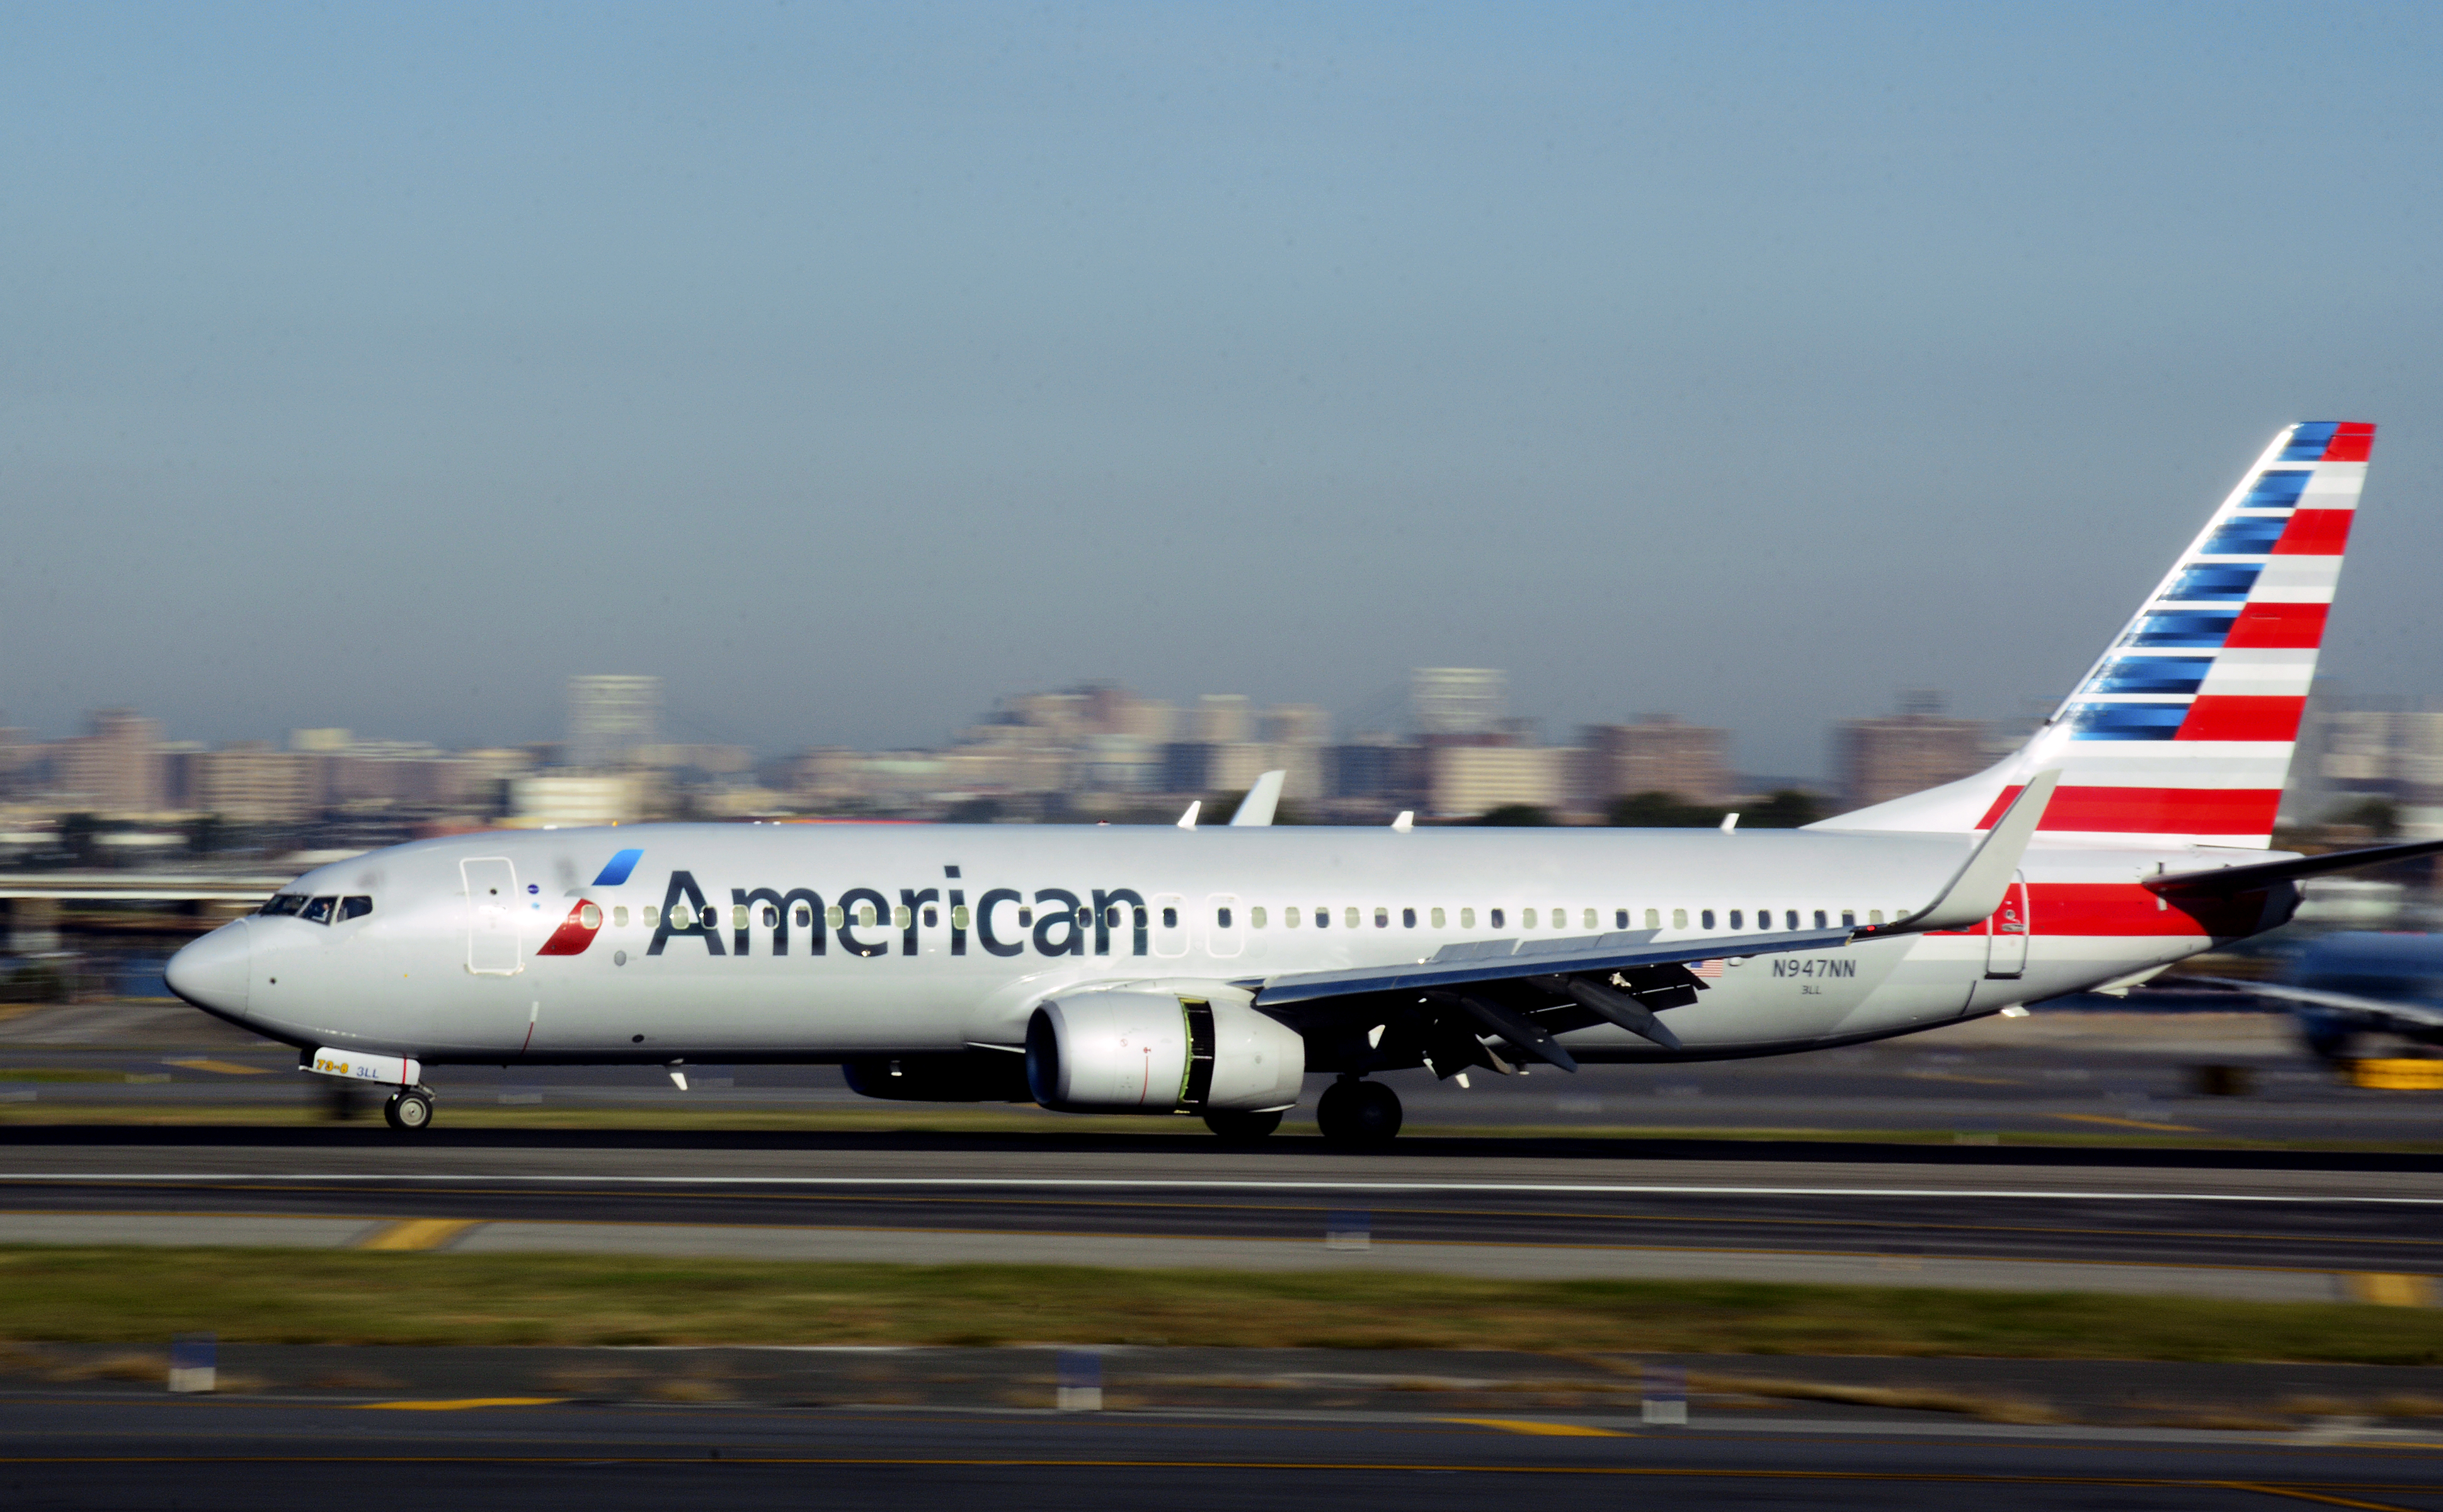 NEW YORK, NY - OCT. 4, 2017:  An American Airlines passenger jet (Boeing 737) lands at LaGuardia Airport in New York, New York.